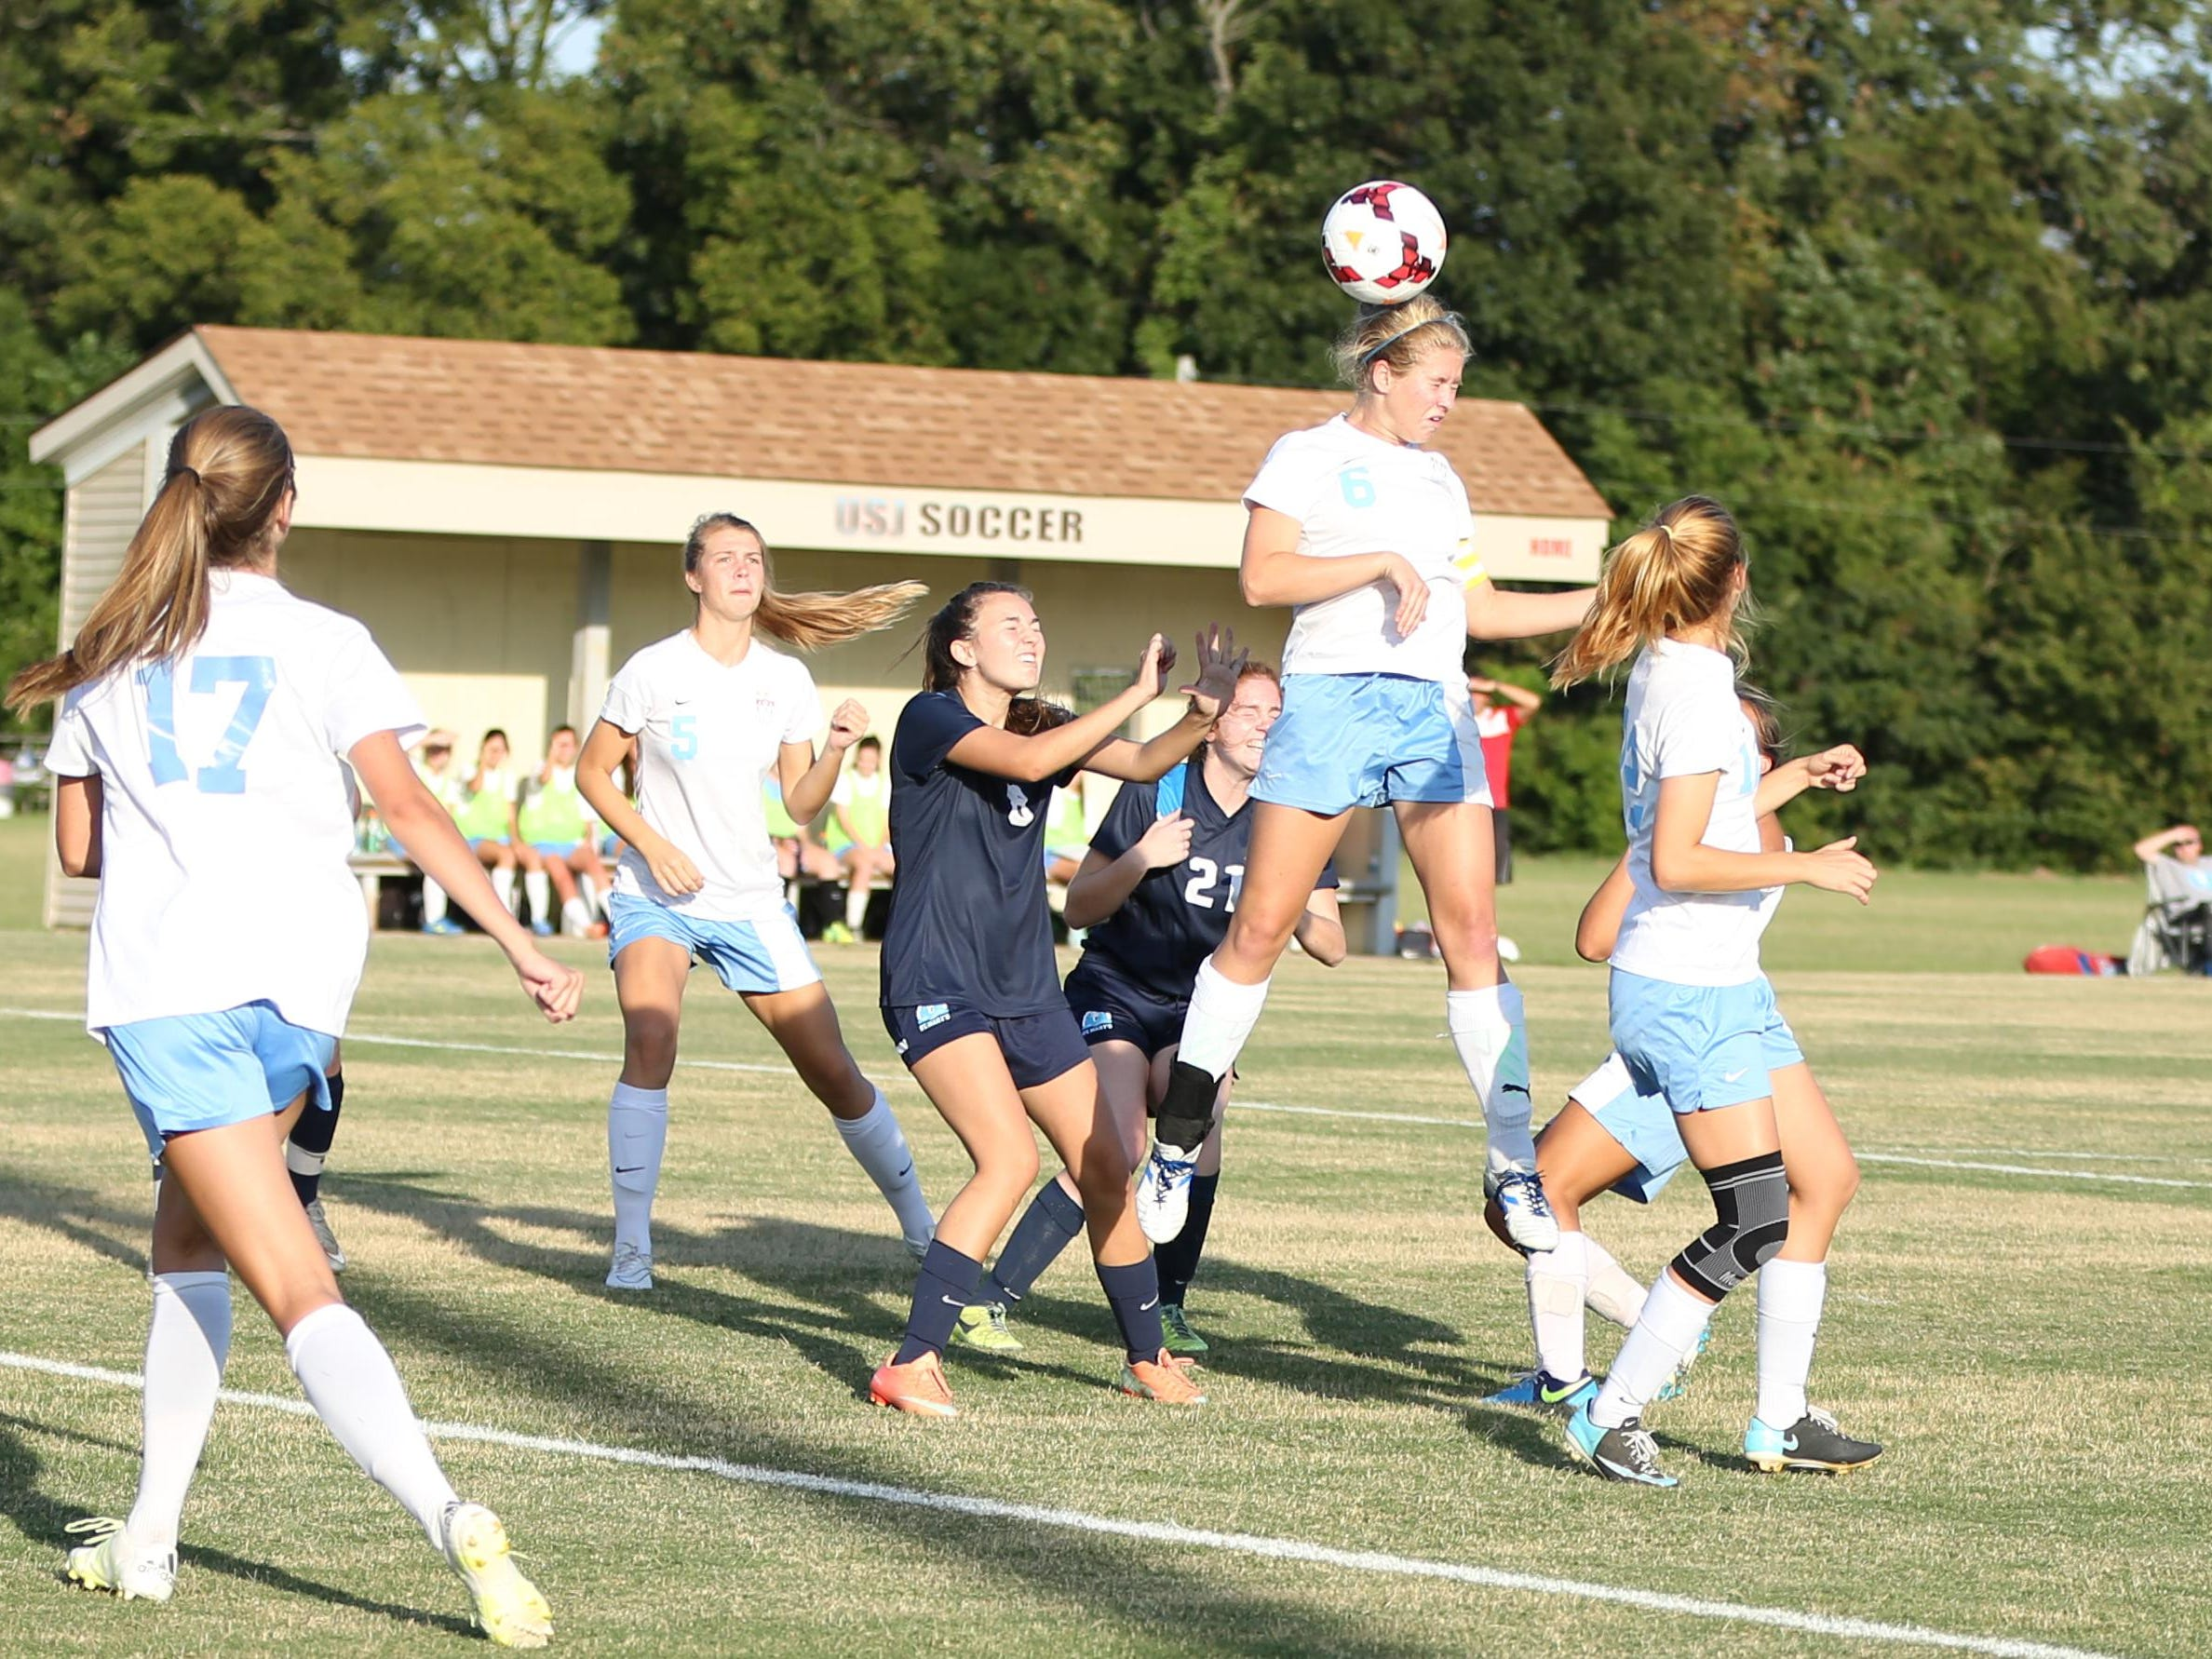 USJ's Addison Dunn is looking to end career with second state championship.